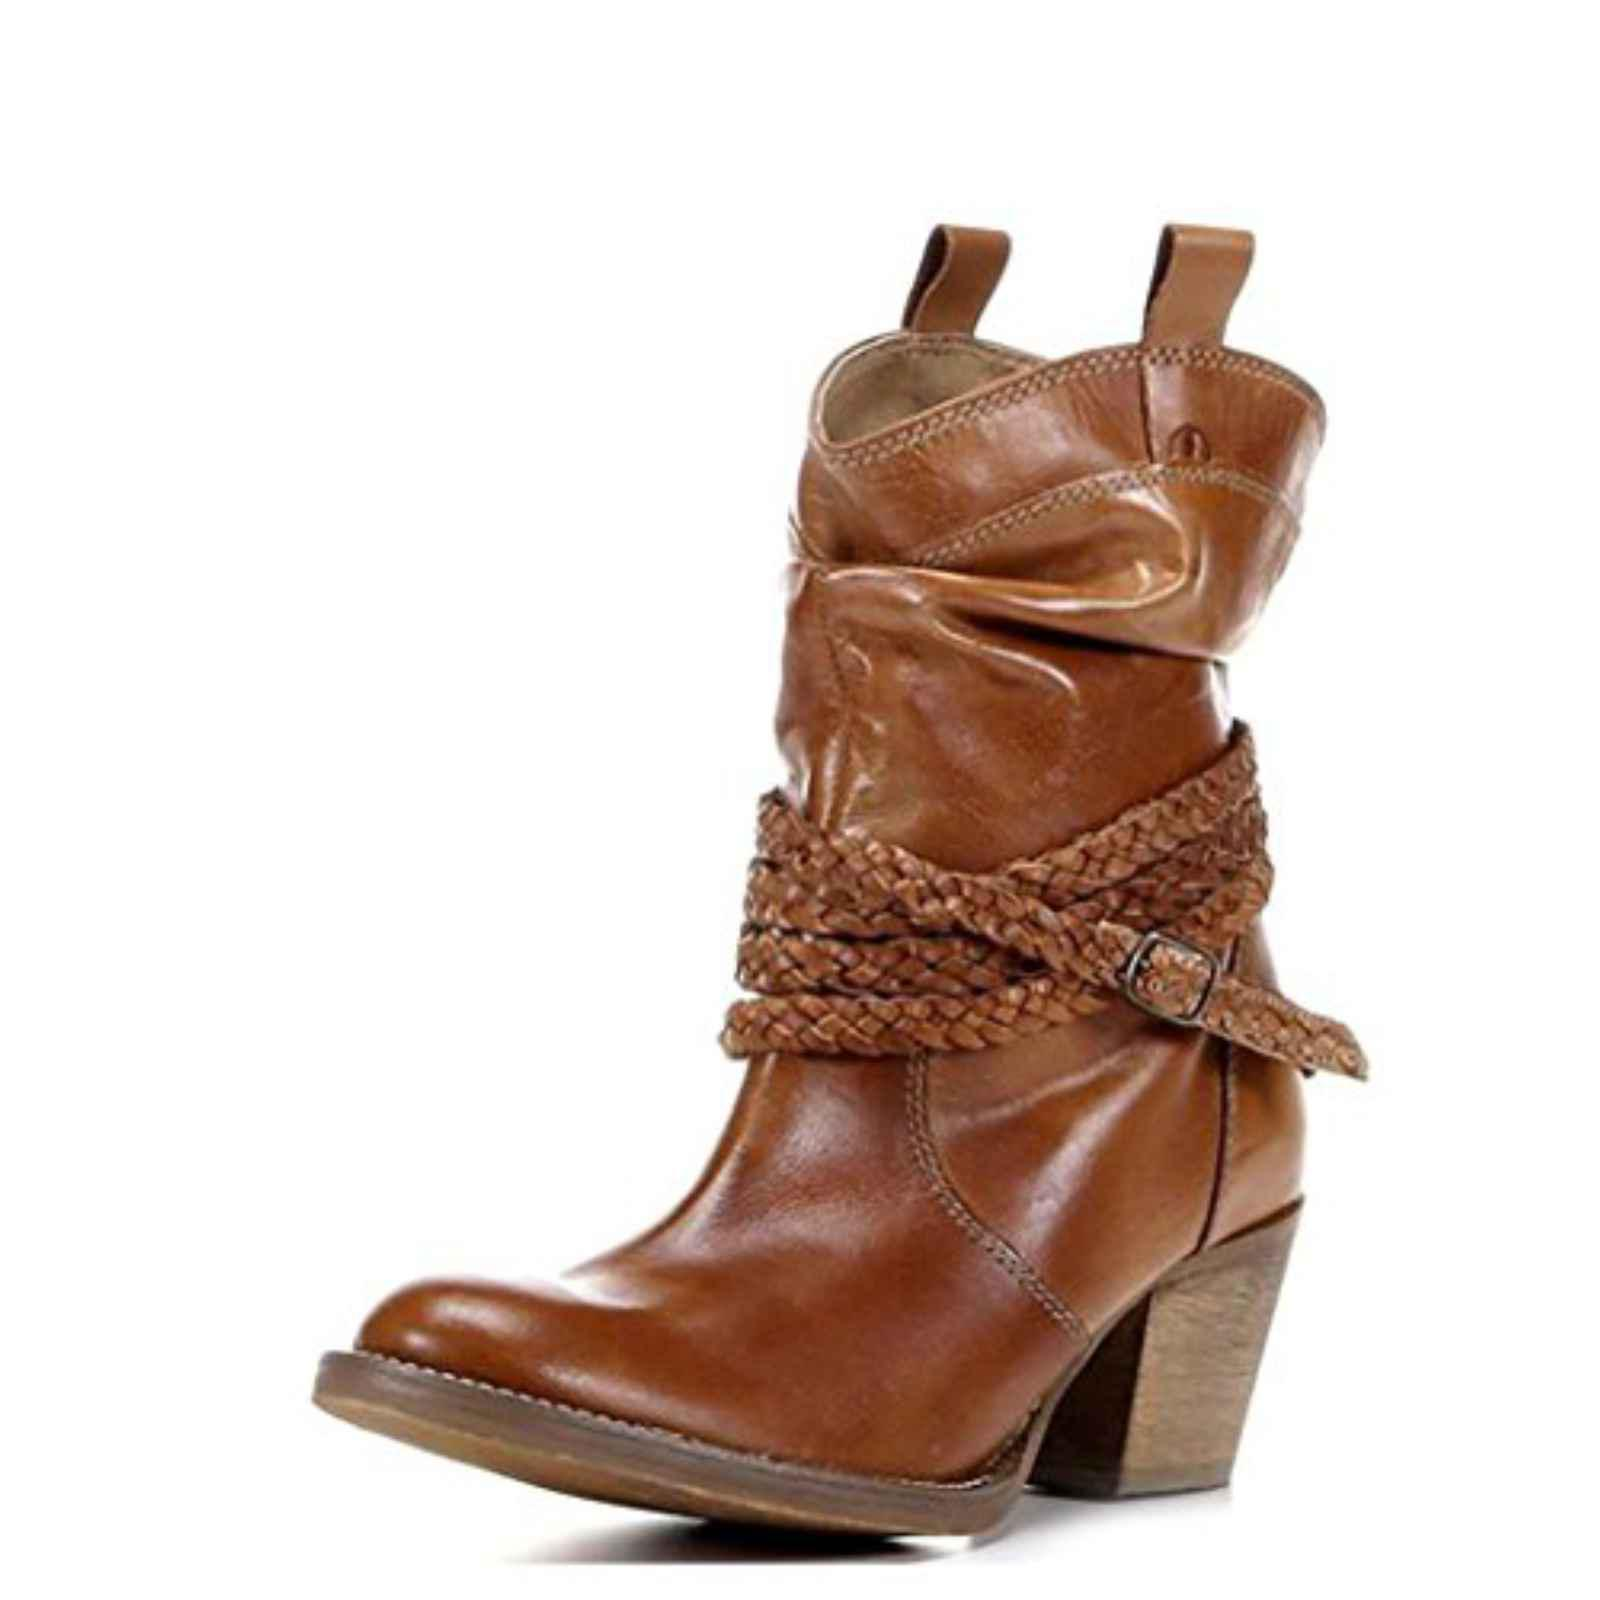 Dingo Twisted sister Round Toe Leather Ankle Boot by Dingo